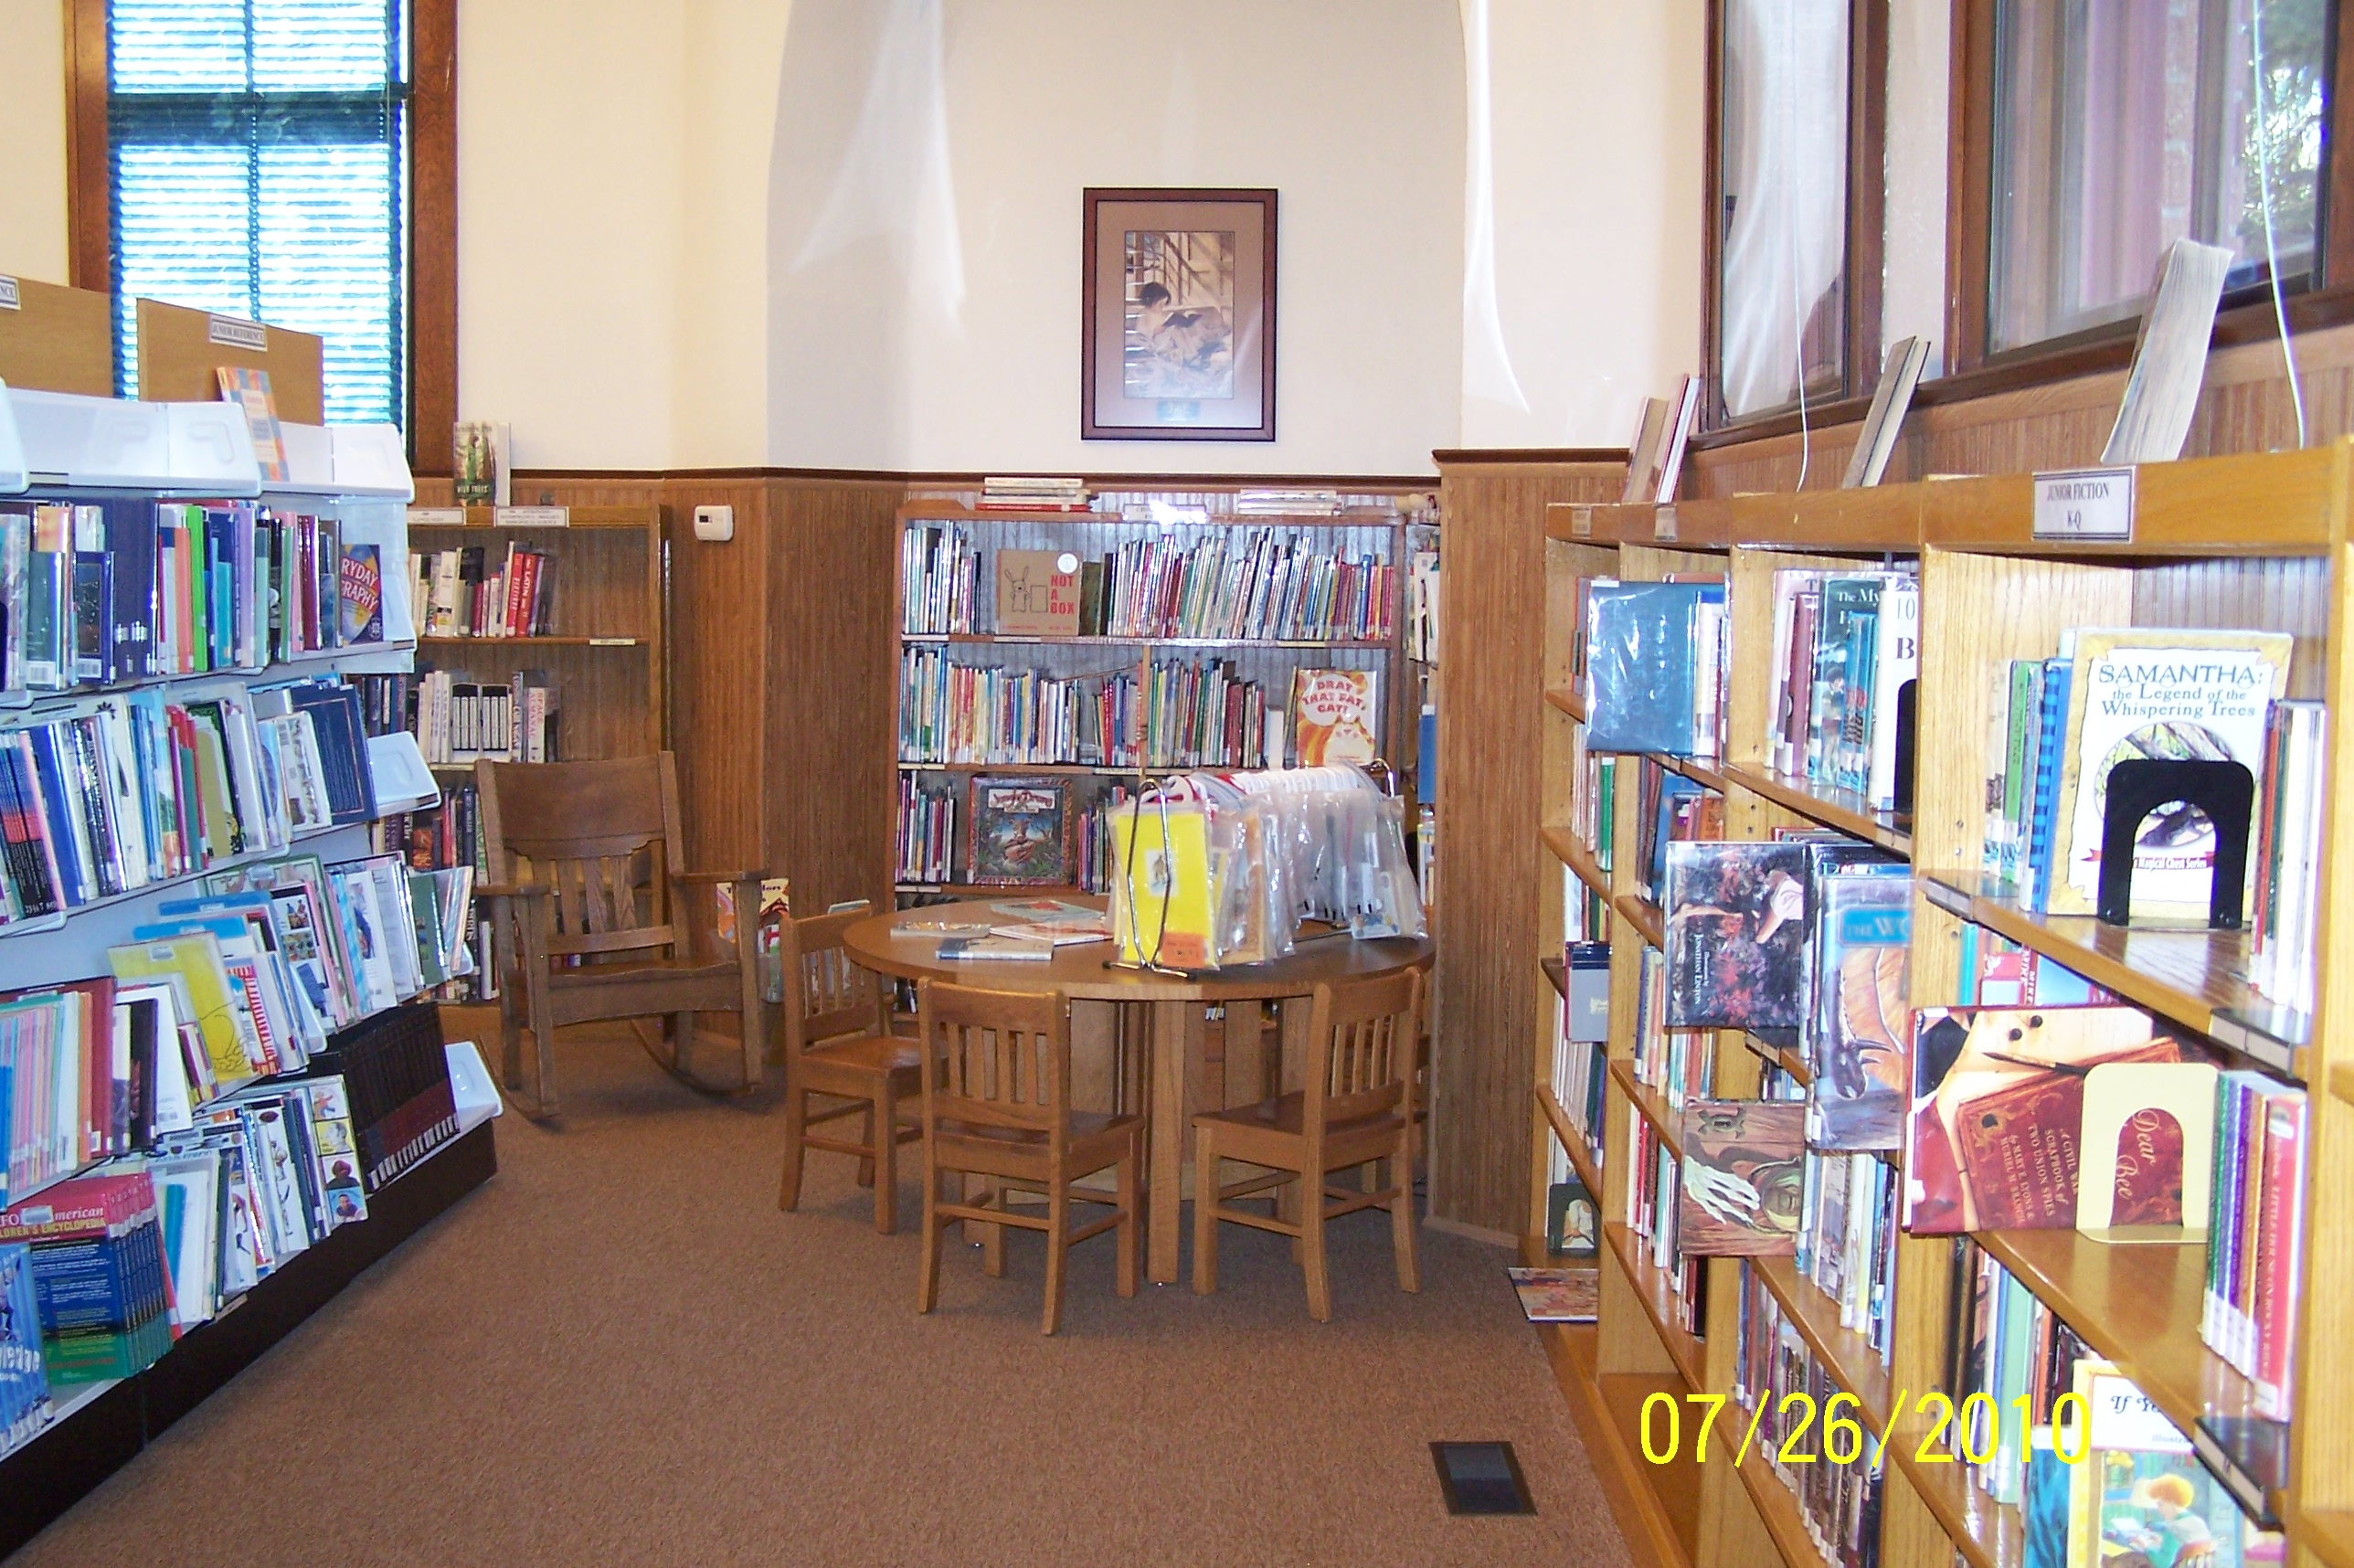 small wood table and chairs surrounded by shelves of children's books